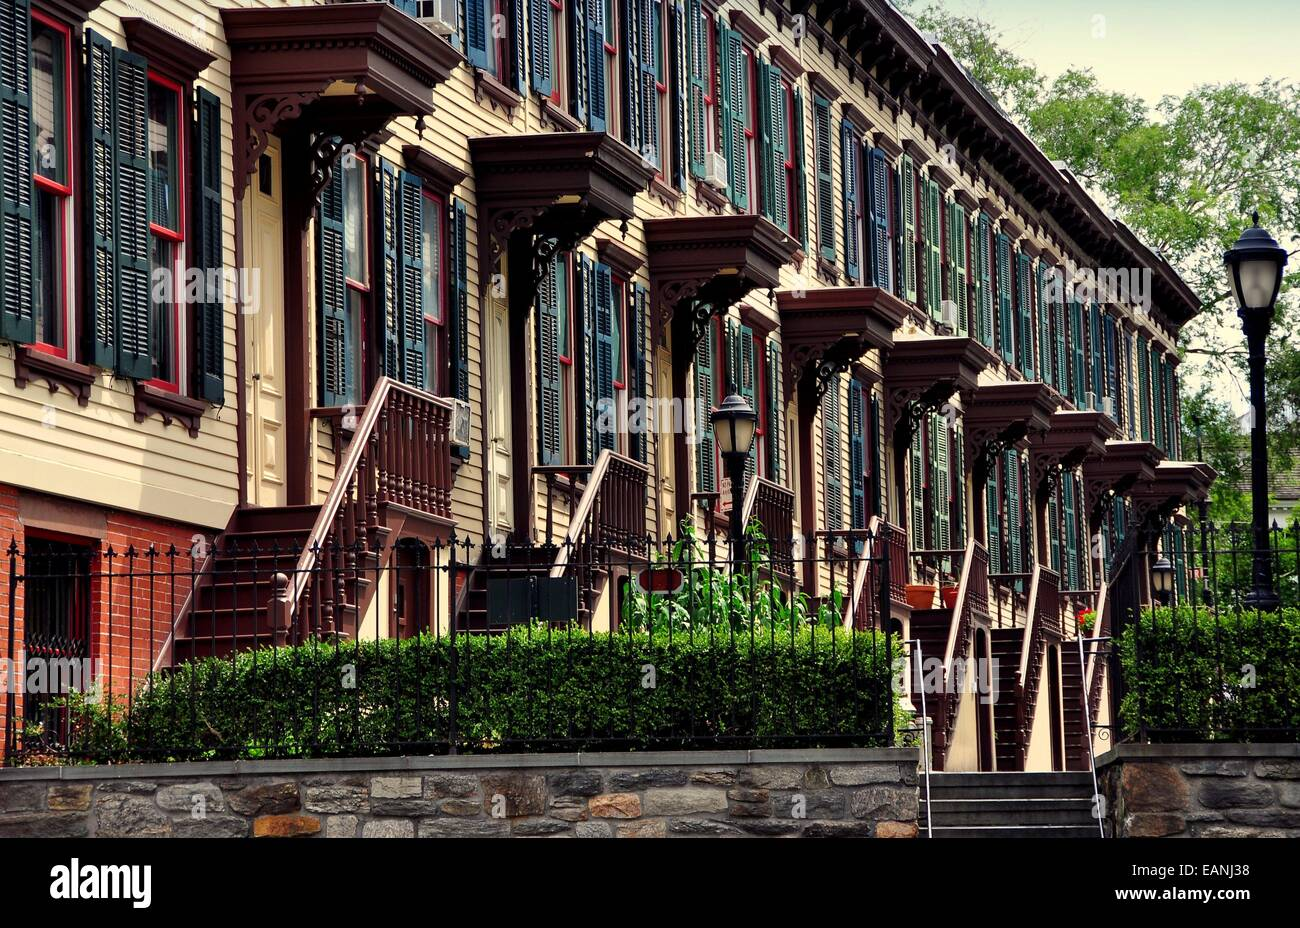 NYC:  1882 two story wooden row houses with stairway stoops and basement entry doors on Sylvan Terrace - Stock Image